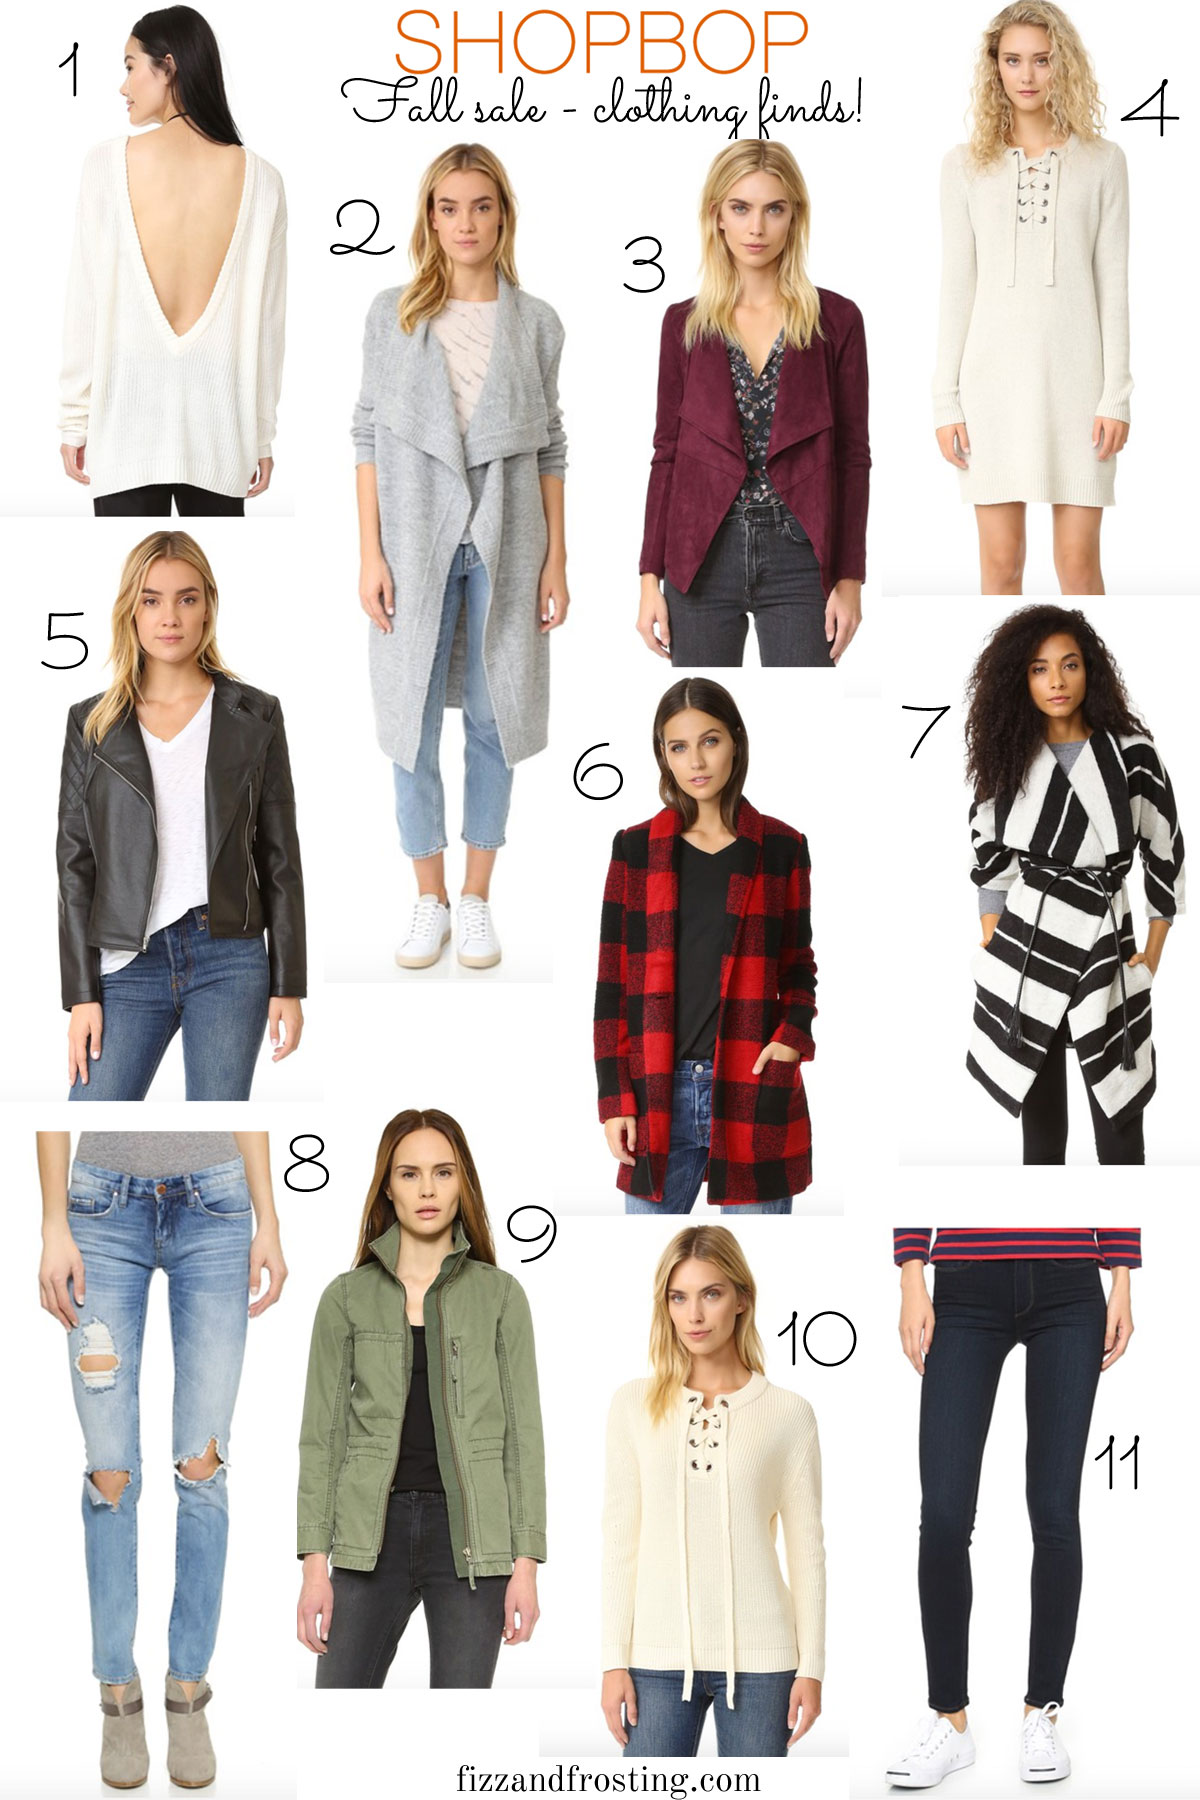 best of the shopbop sale | www.fizzandfrosting.com